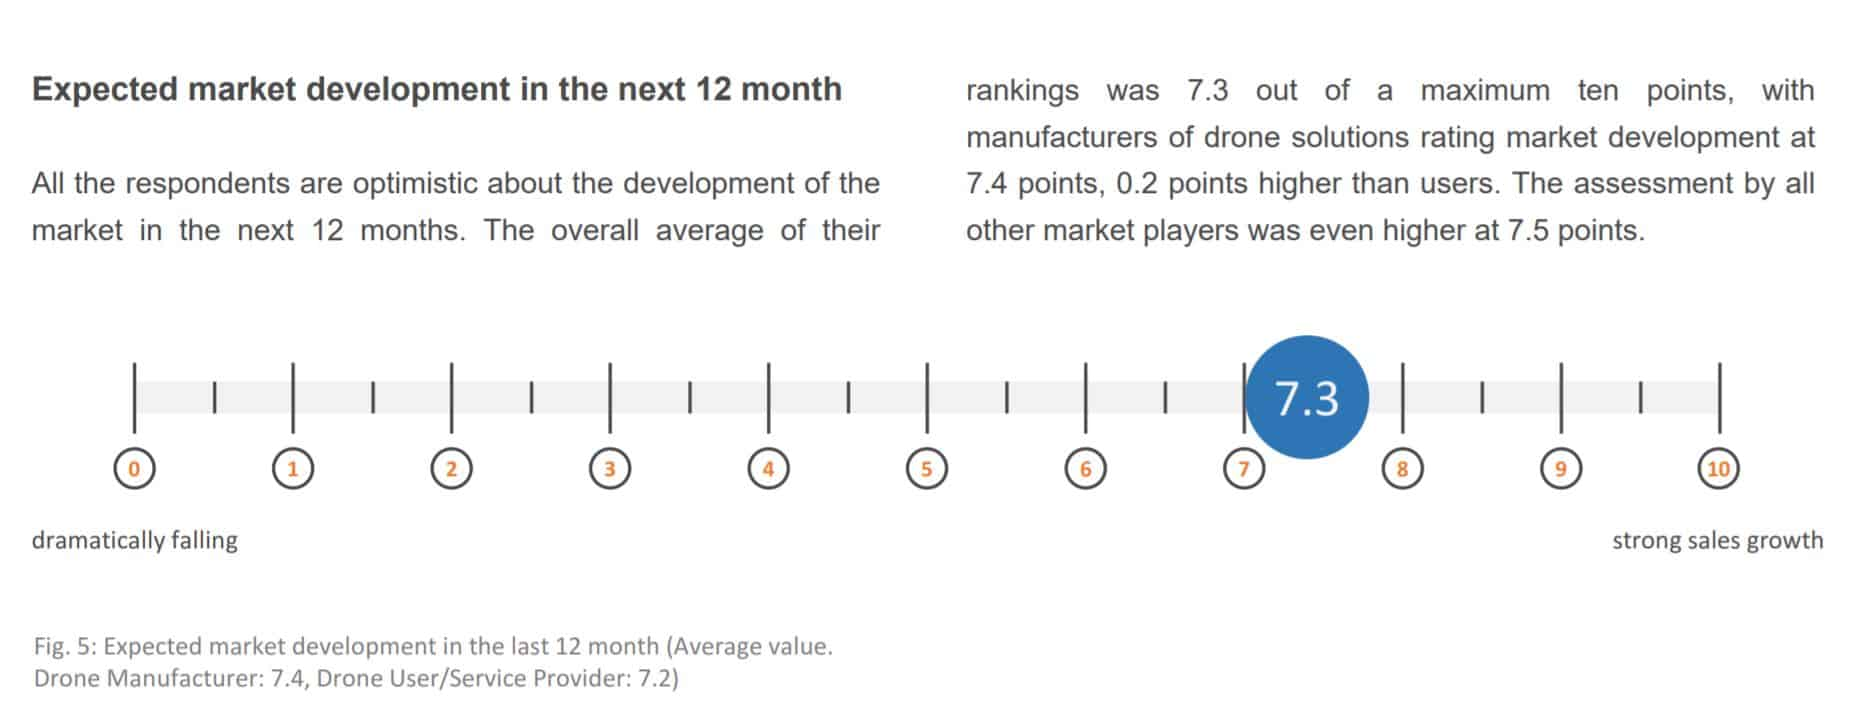 European drone market growth